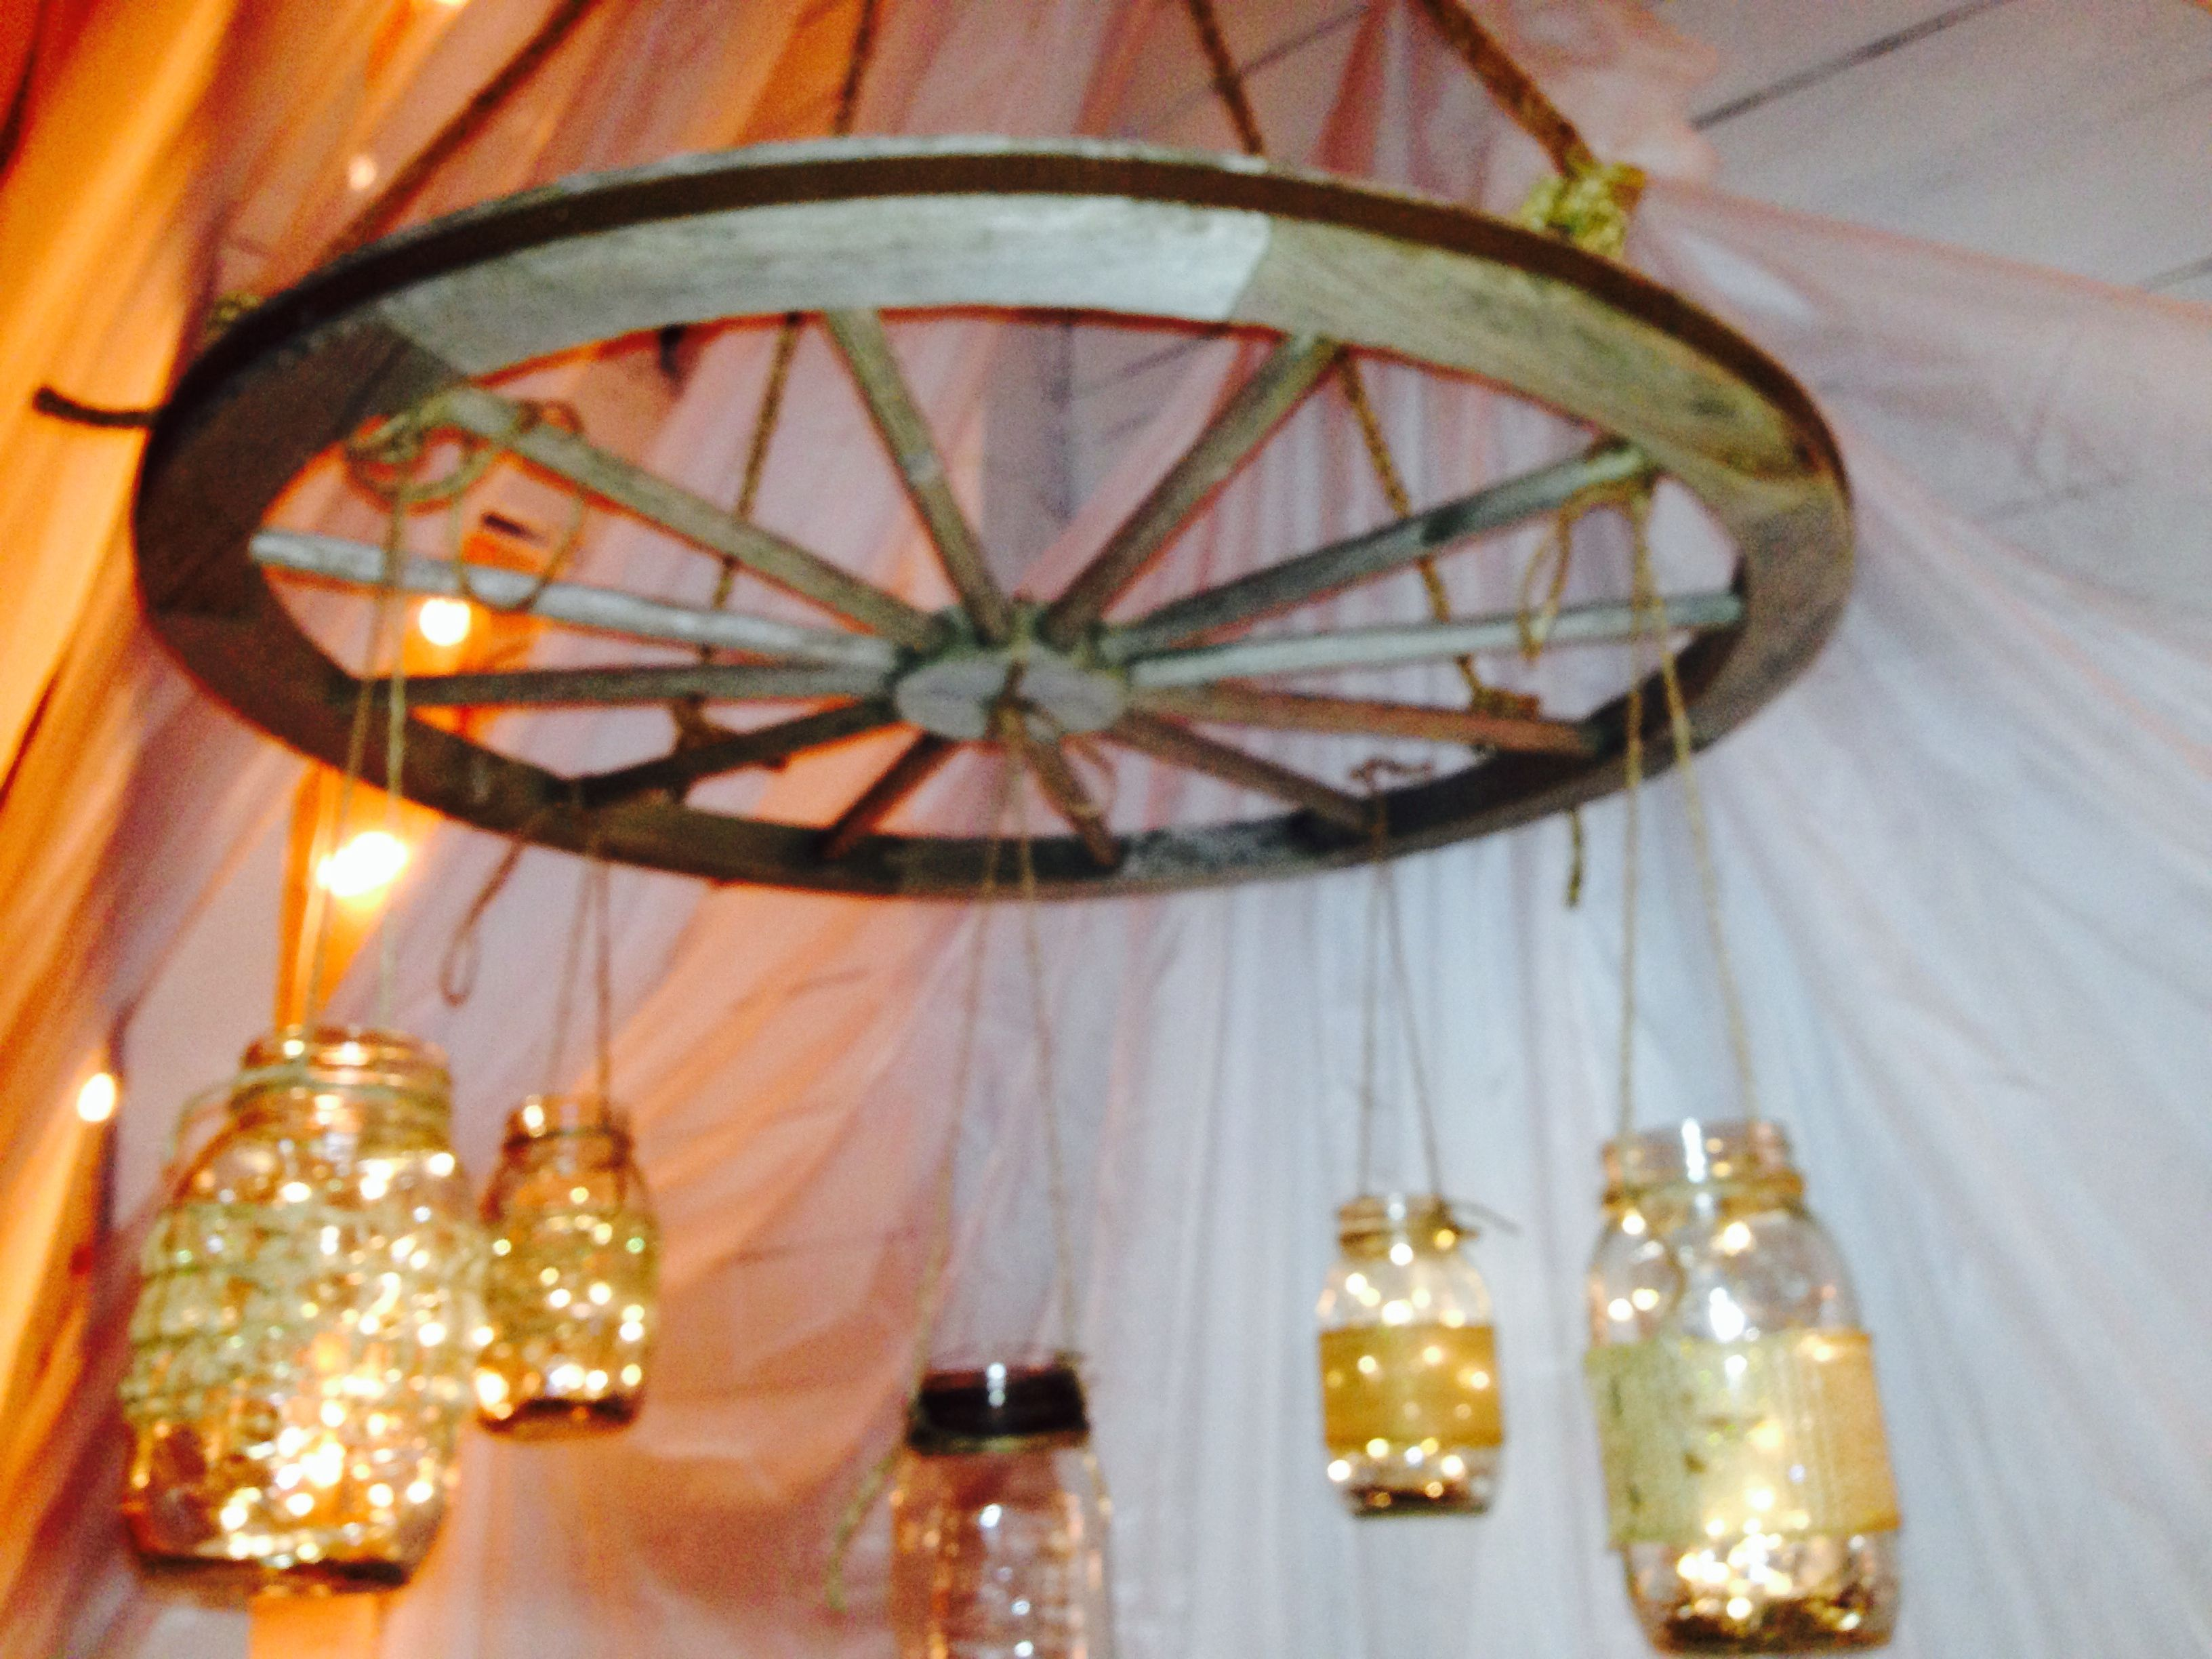 Wagon Wheel chandelier with hanging mason jars Battery operated